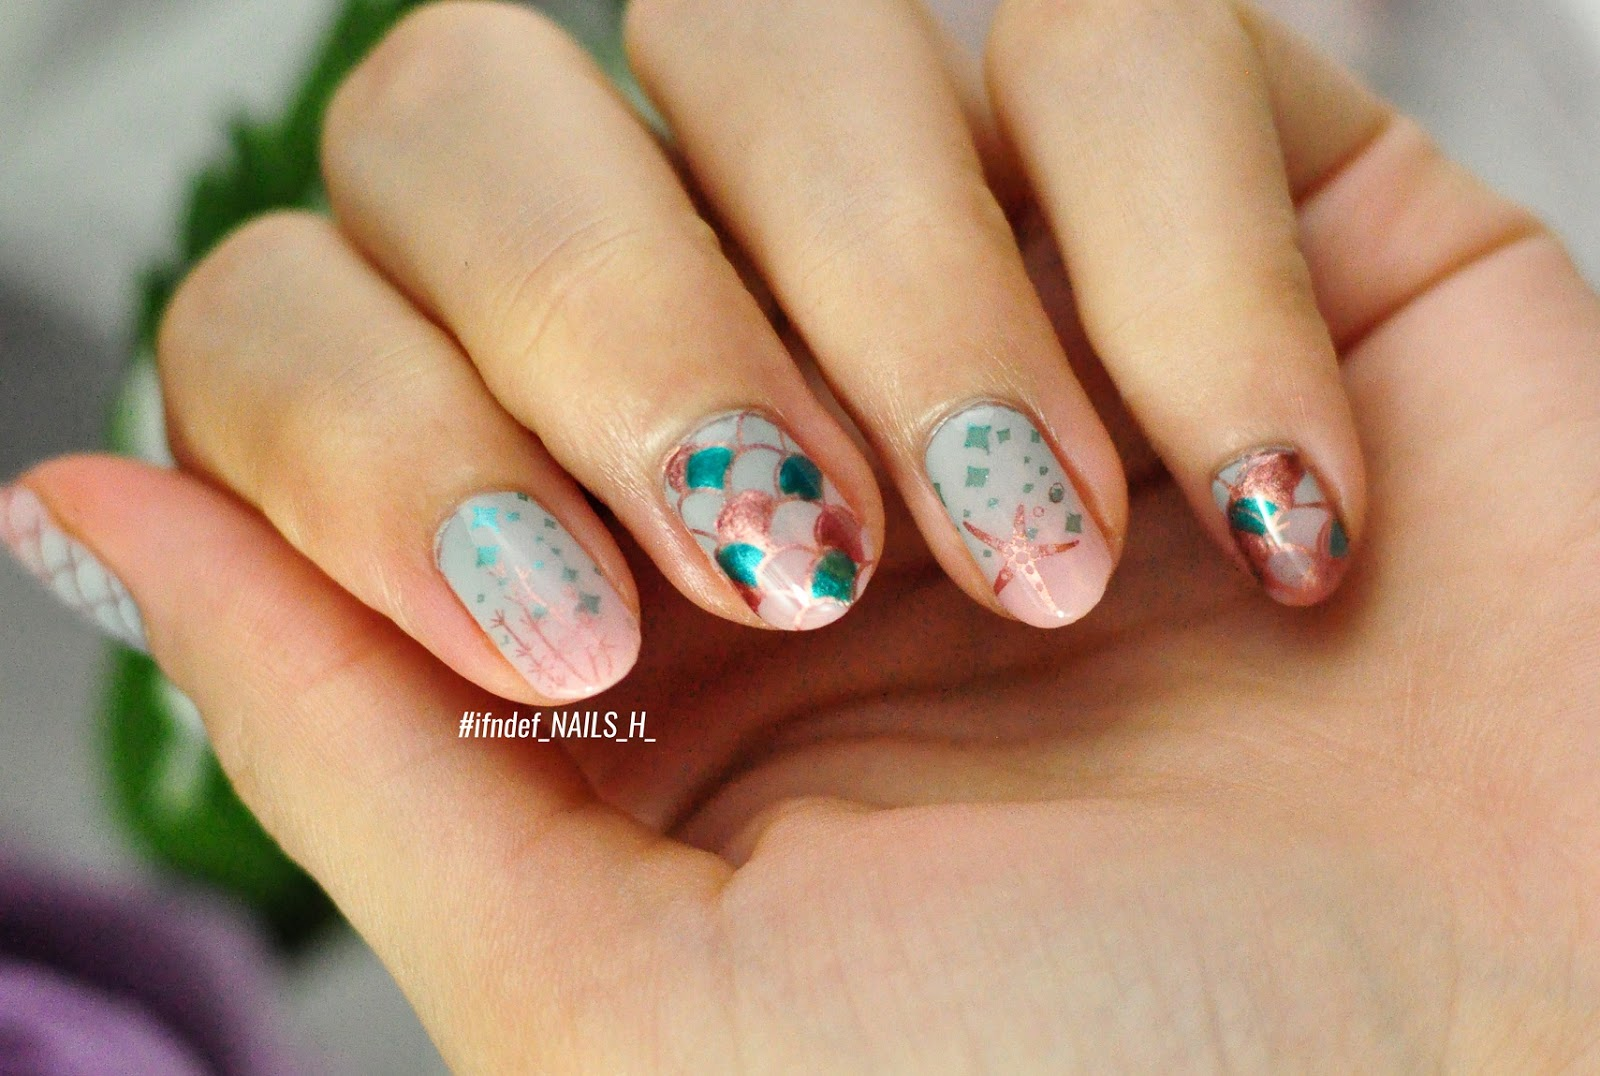 Under The Basic Sea Mint Pink Mermaid Nails Ifndef Nails H